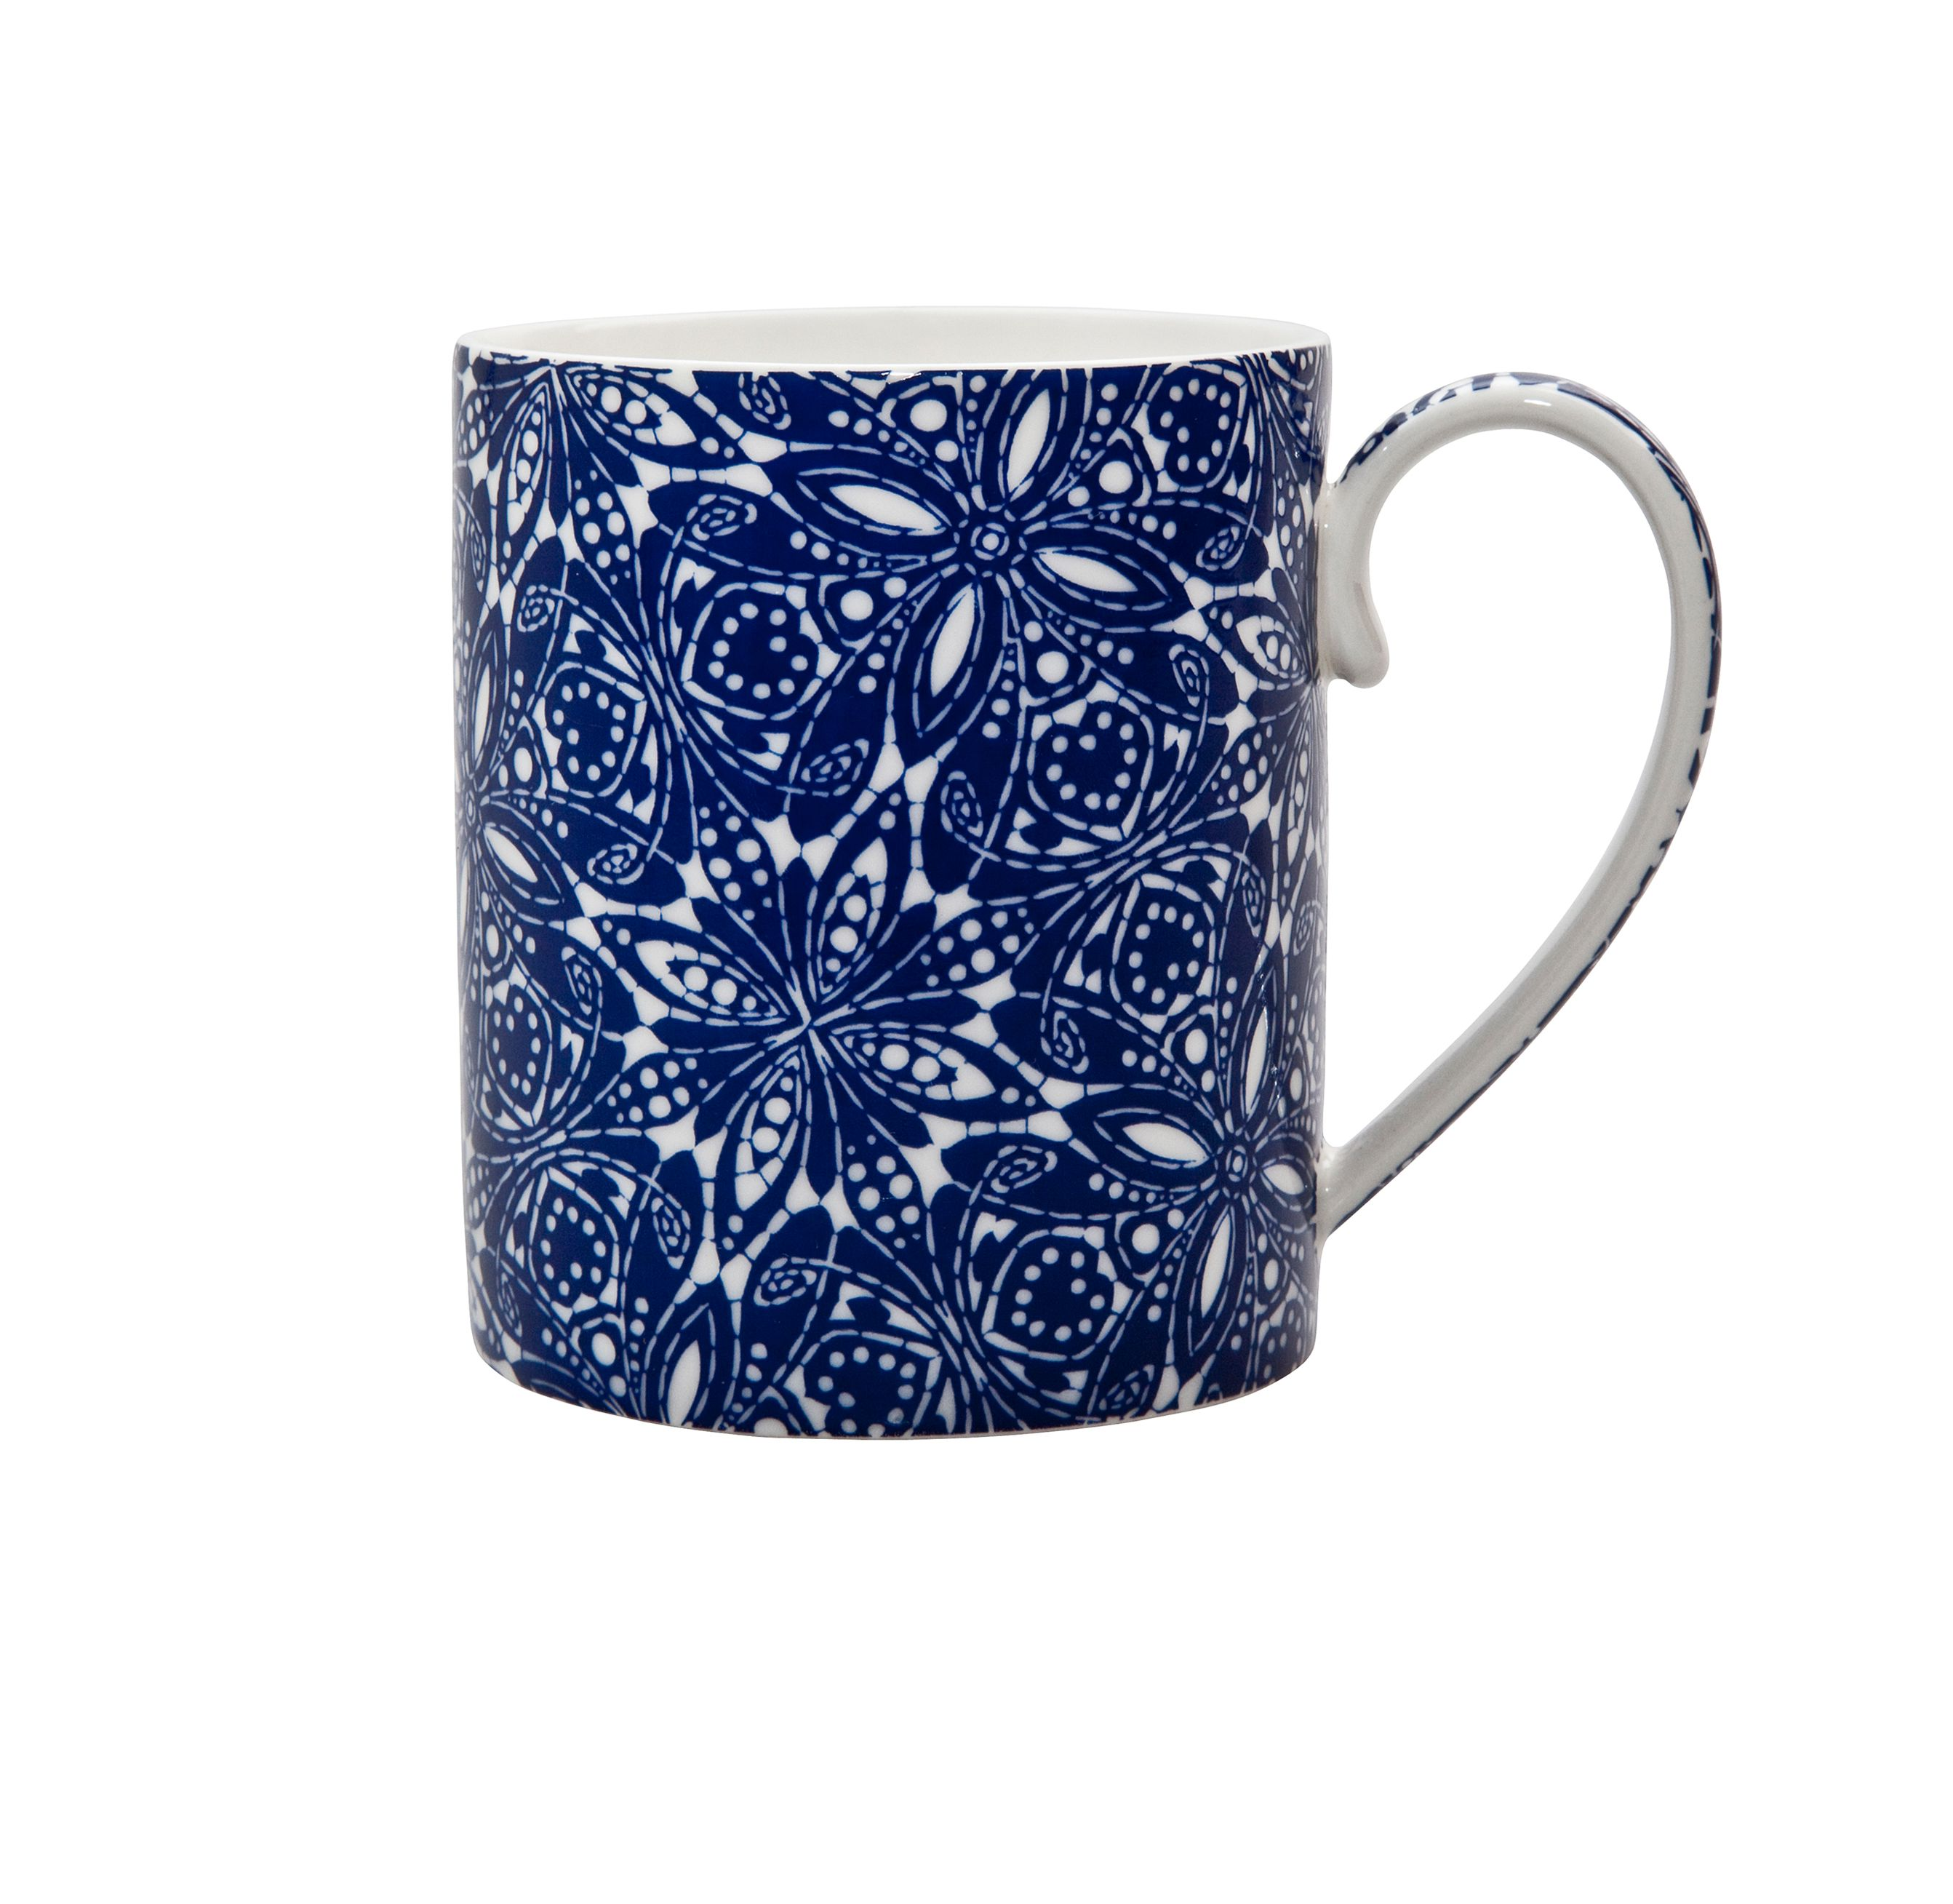 Monsoon cadiz blue mug